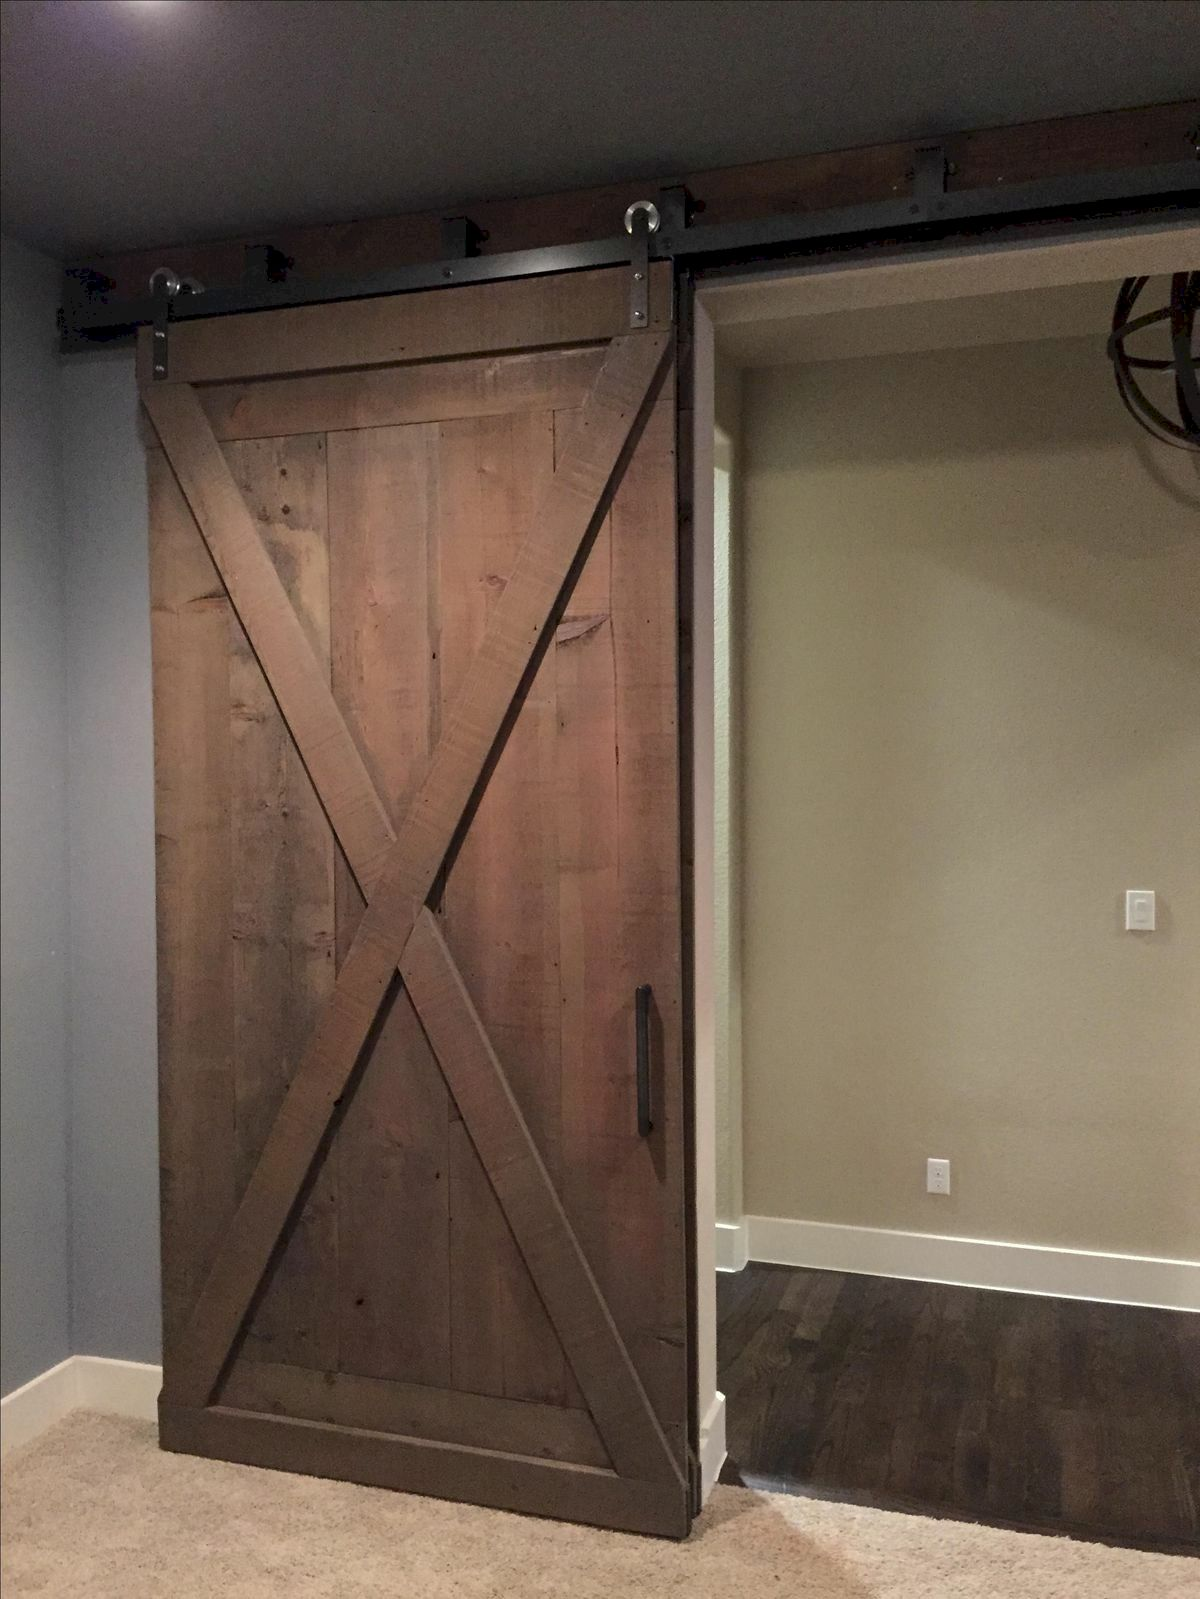 70 Rustic Home Decor Ideas for Doors and Windows (62)